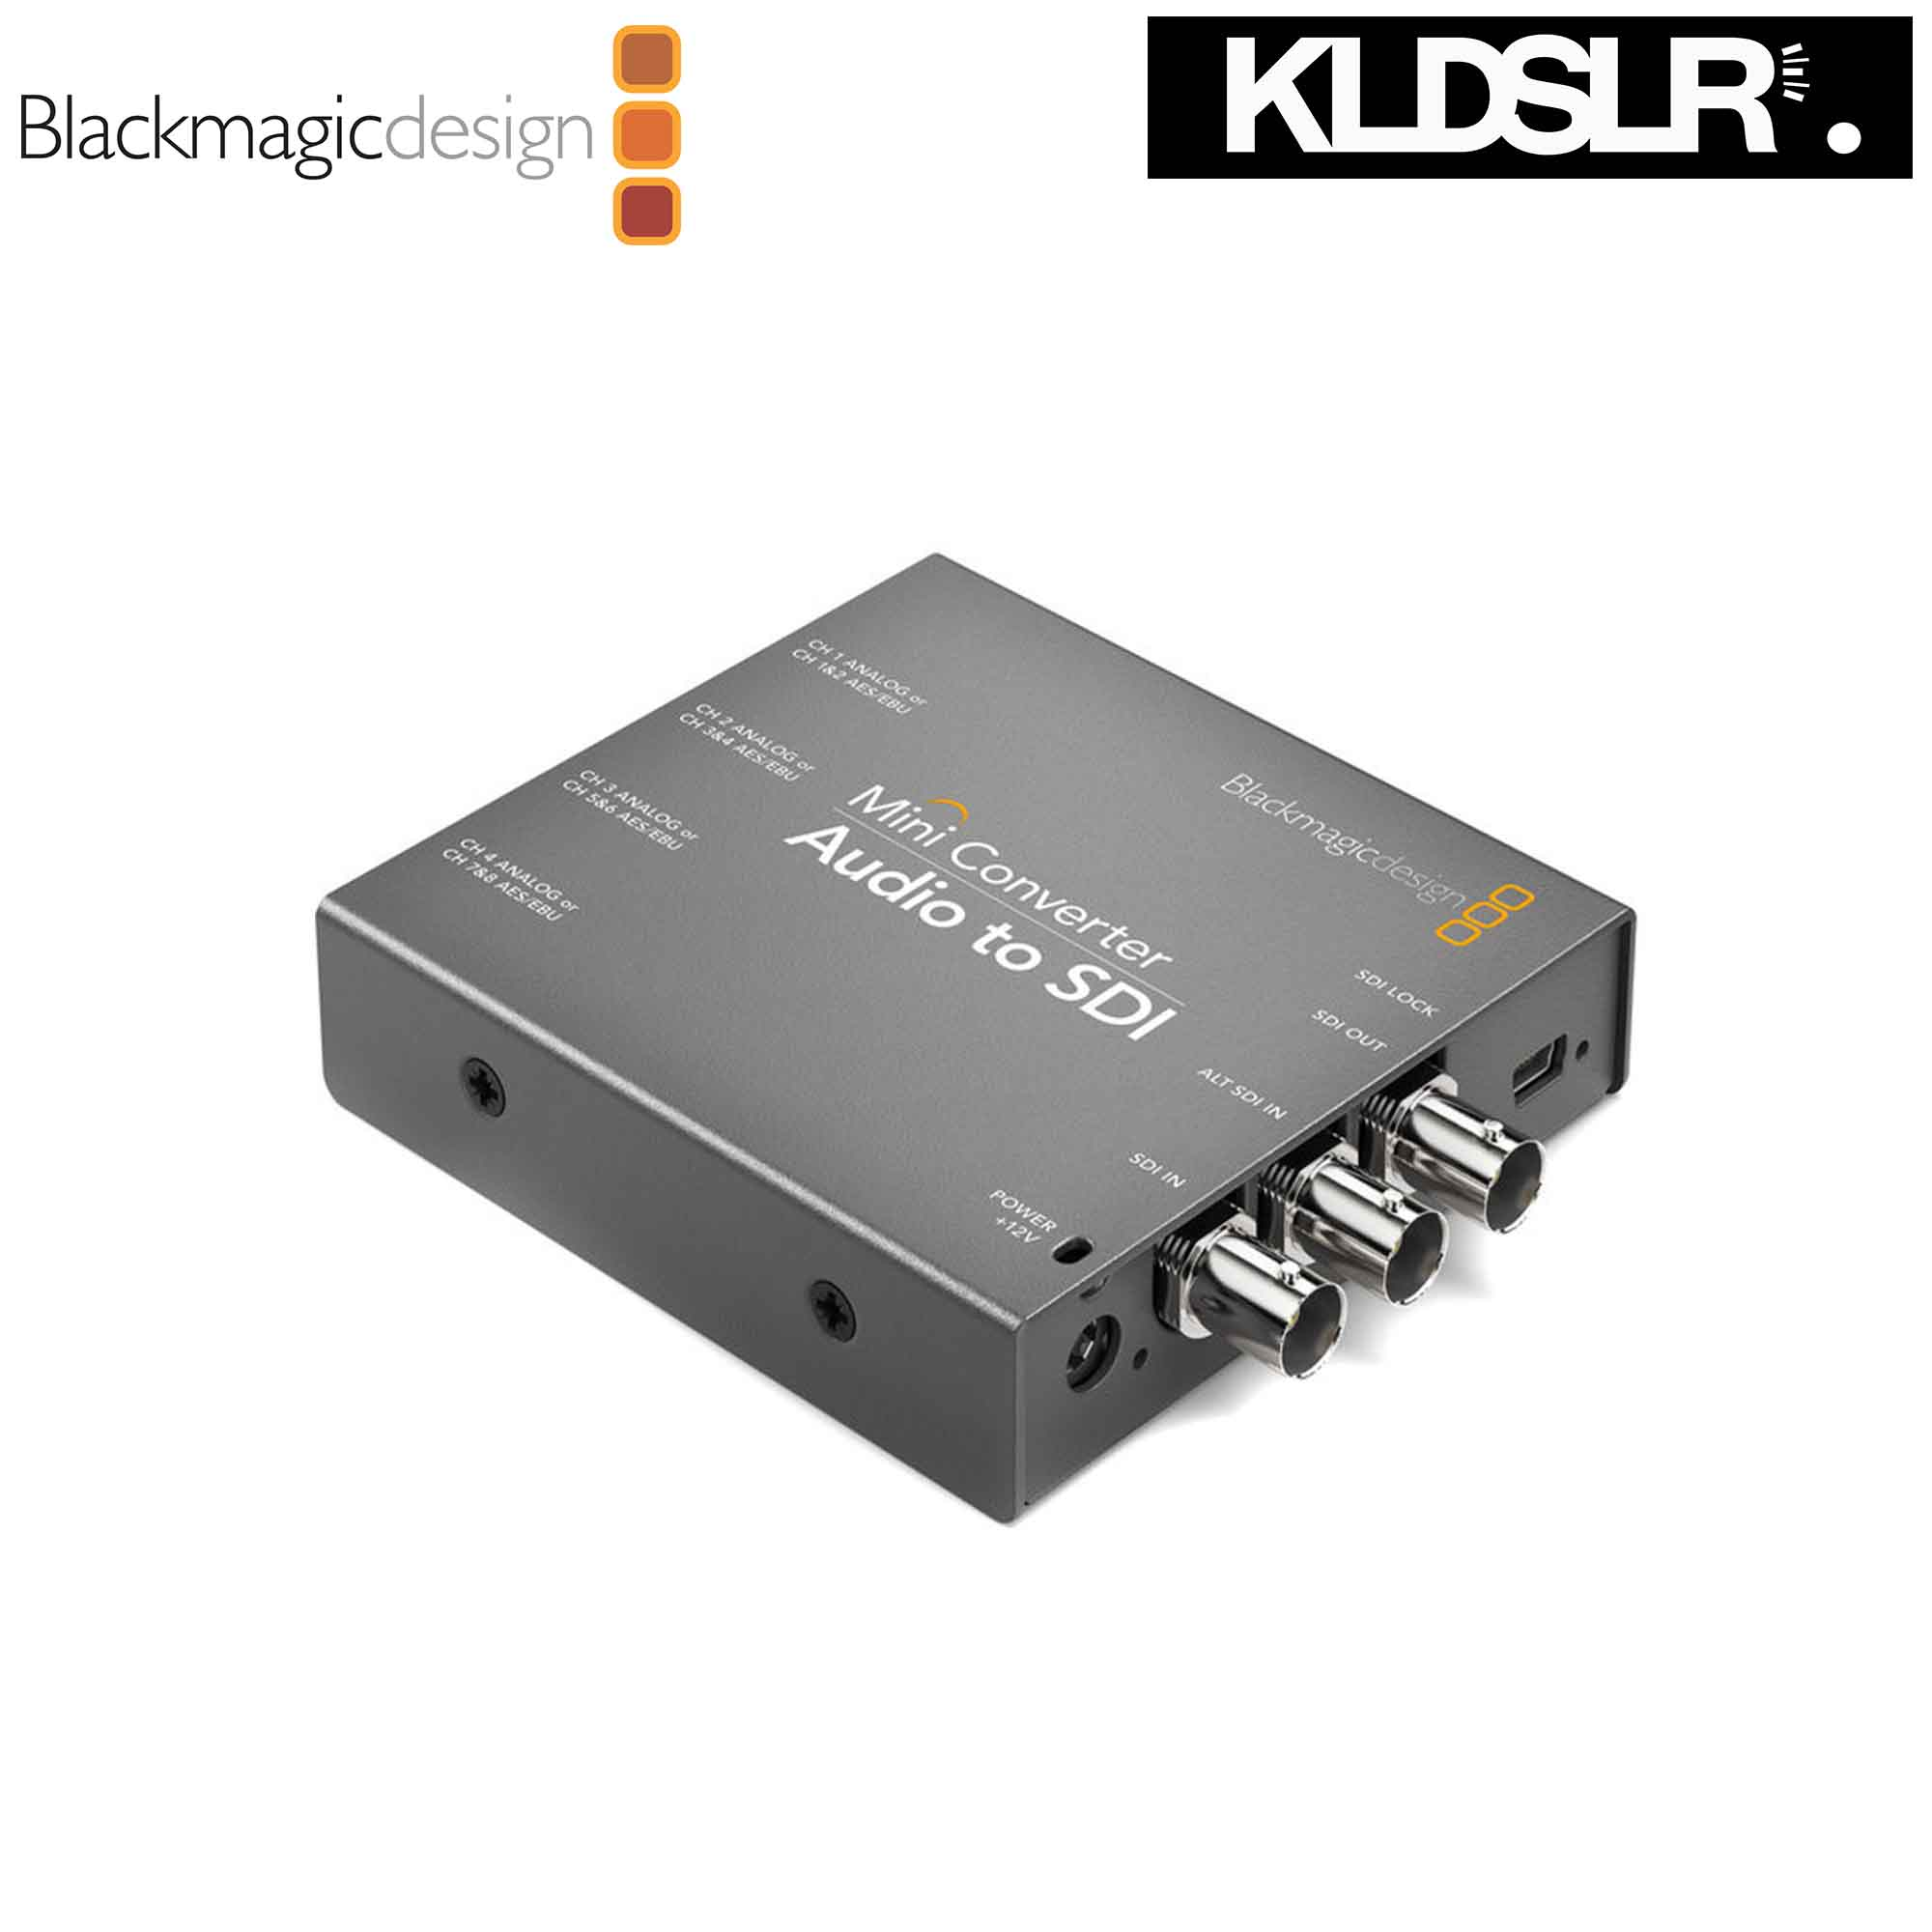 Blackmagic Design Mini Converter Audio to SDI (Blackmagic Malaysia)